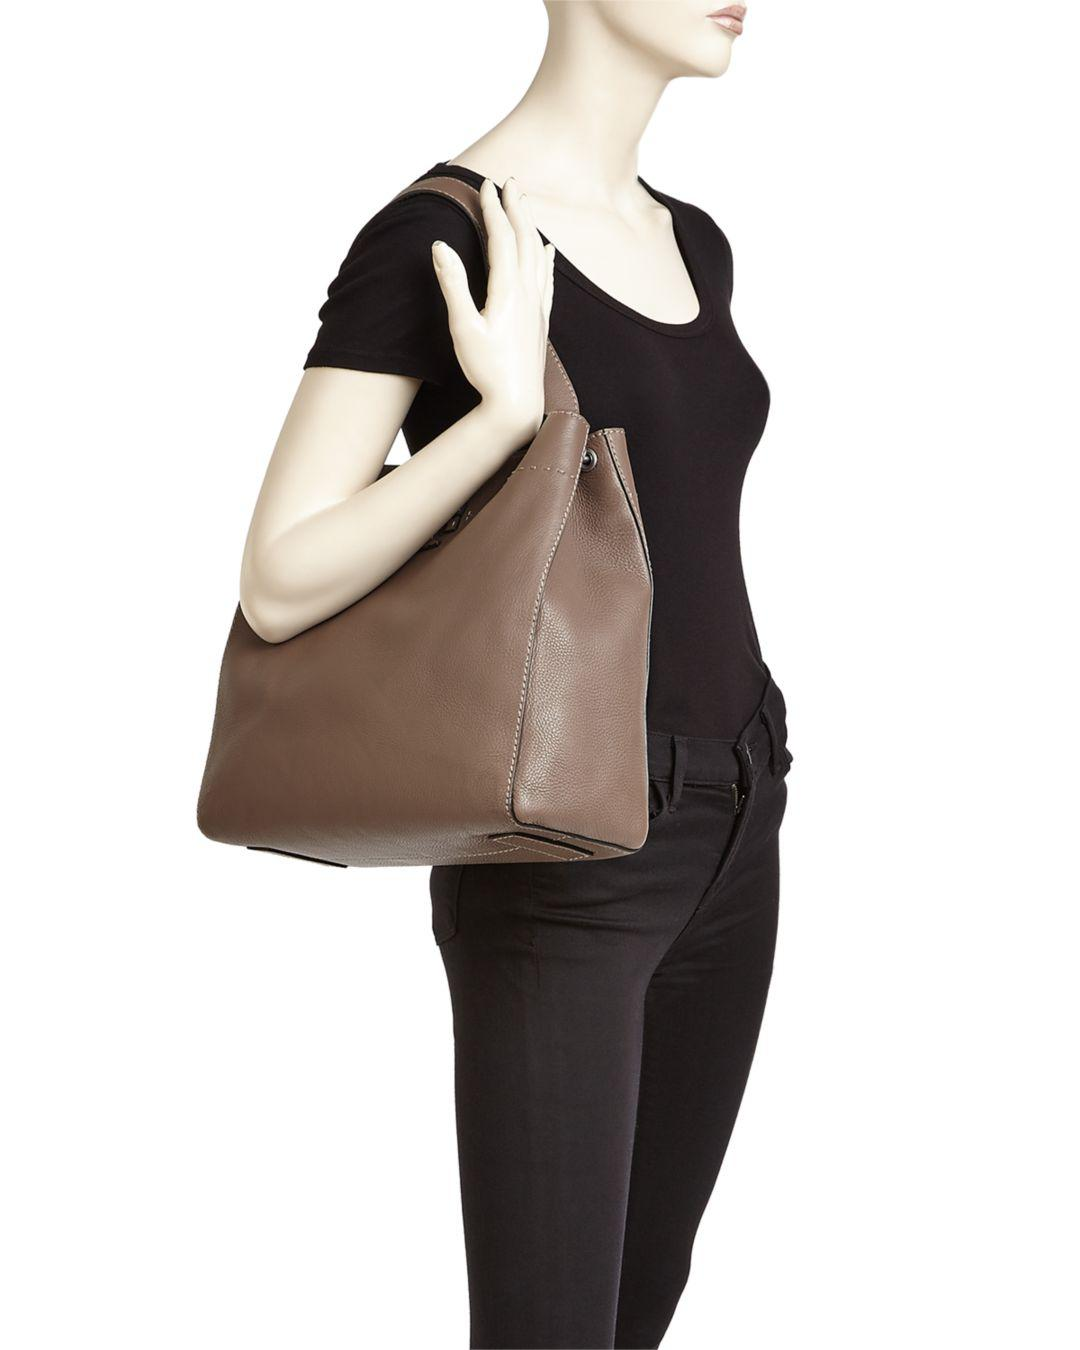 eac820ca306 Tory Burch Mcgraw Leather Hobo Bag in Black - Save 12% - Lyst